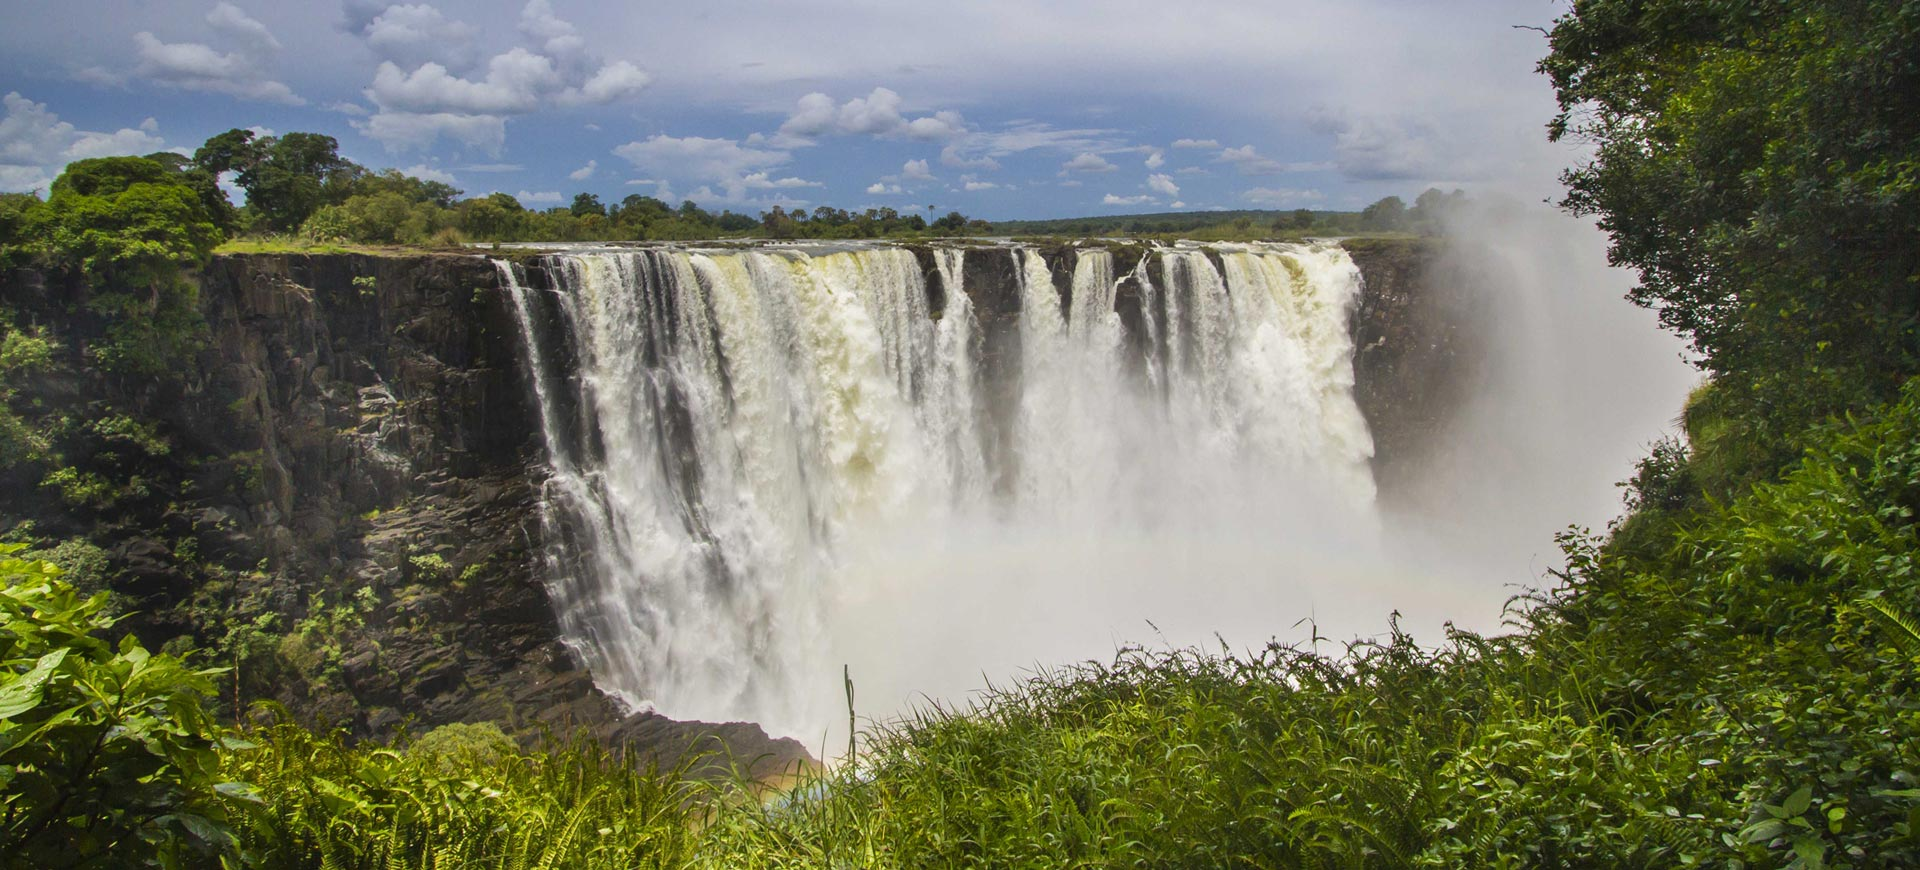 Conference Waterfall Tour Victoria Falls